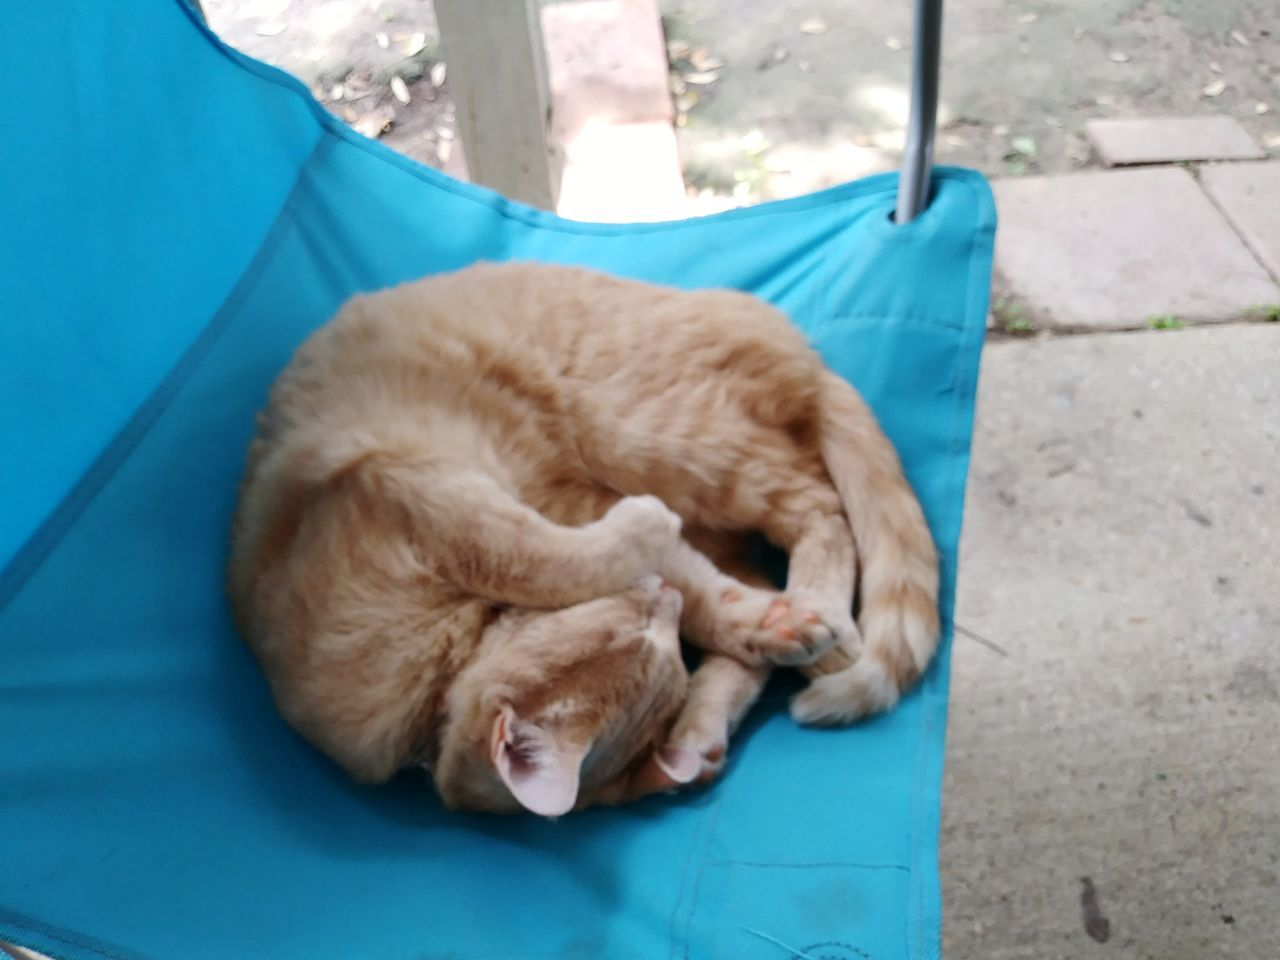 mammal, domestic cat, pets, animal themes, sleeping, domestic animals, one animal, feline, relaxation, eyes closed, high angle view, ginger cat, no people, lying down, day, outdoors